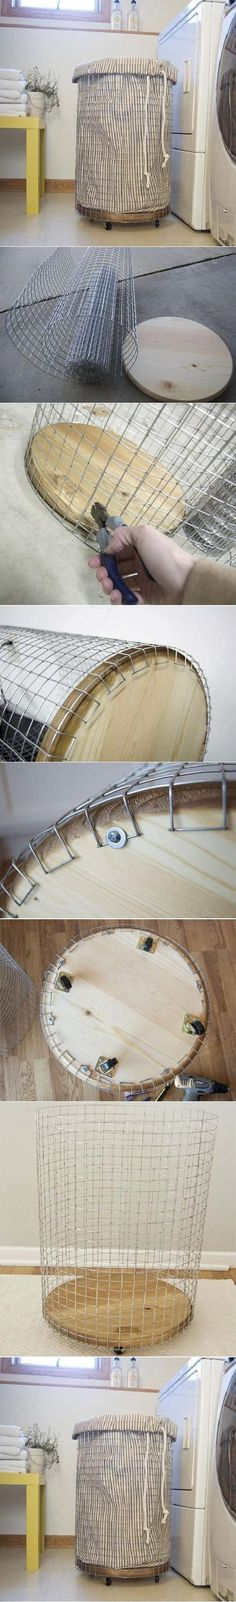 diy hamper use extra chicken wire and scrap wood